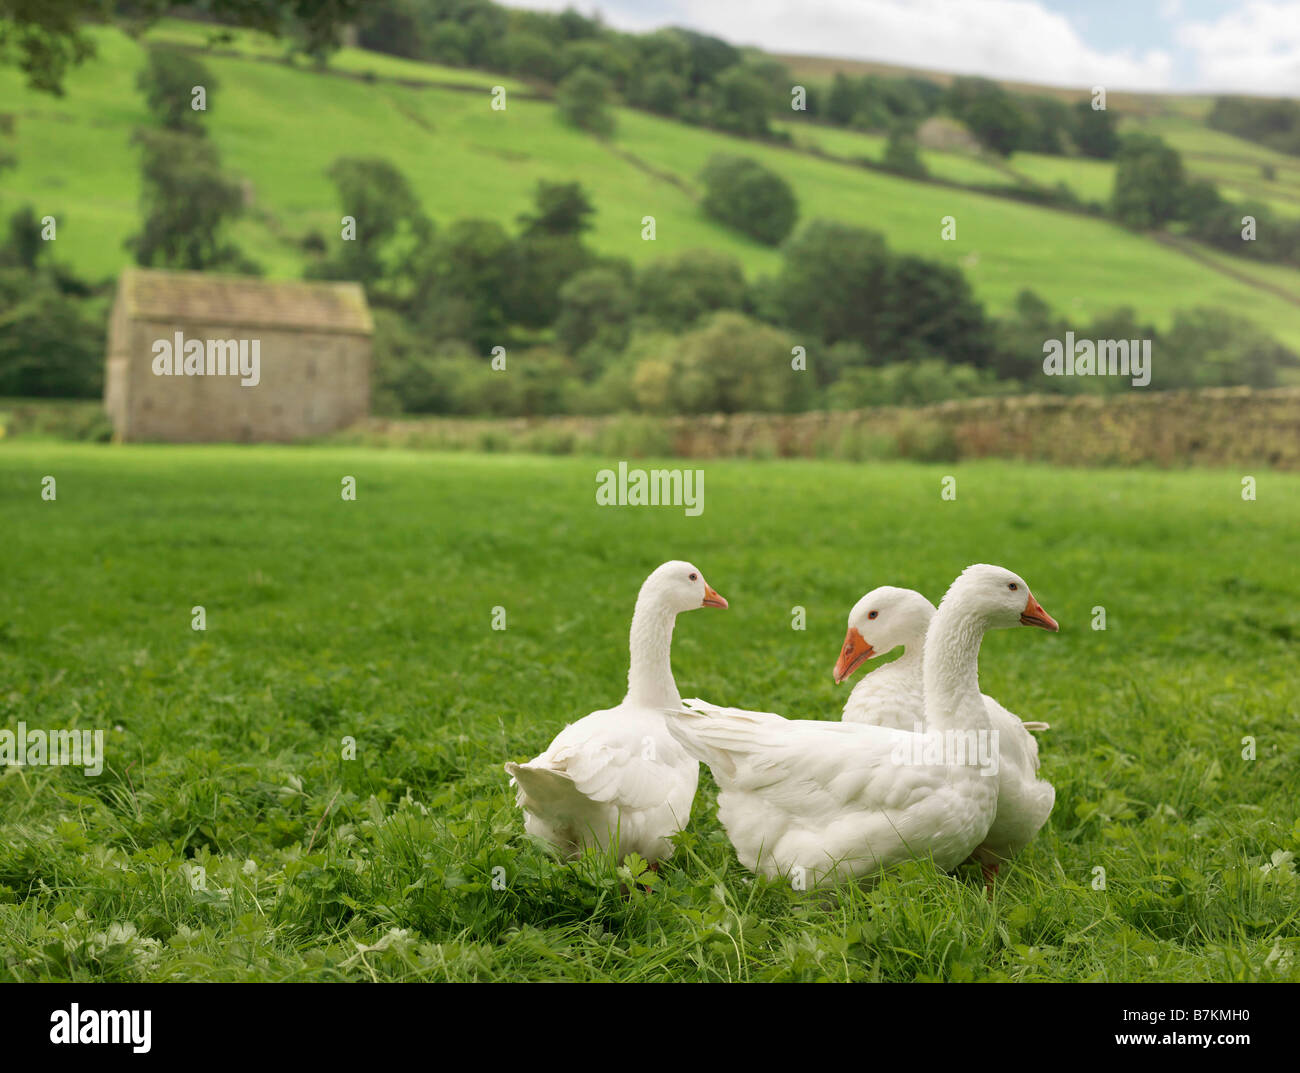 Three Geese In Field - Stock Image